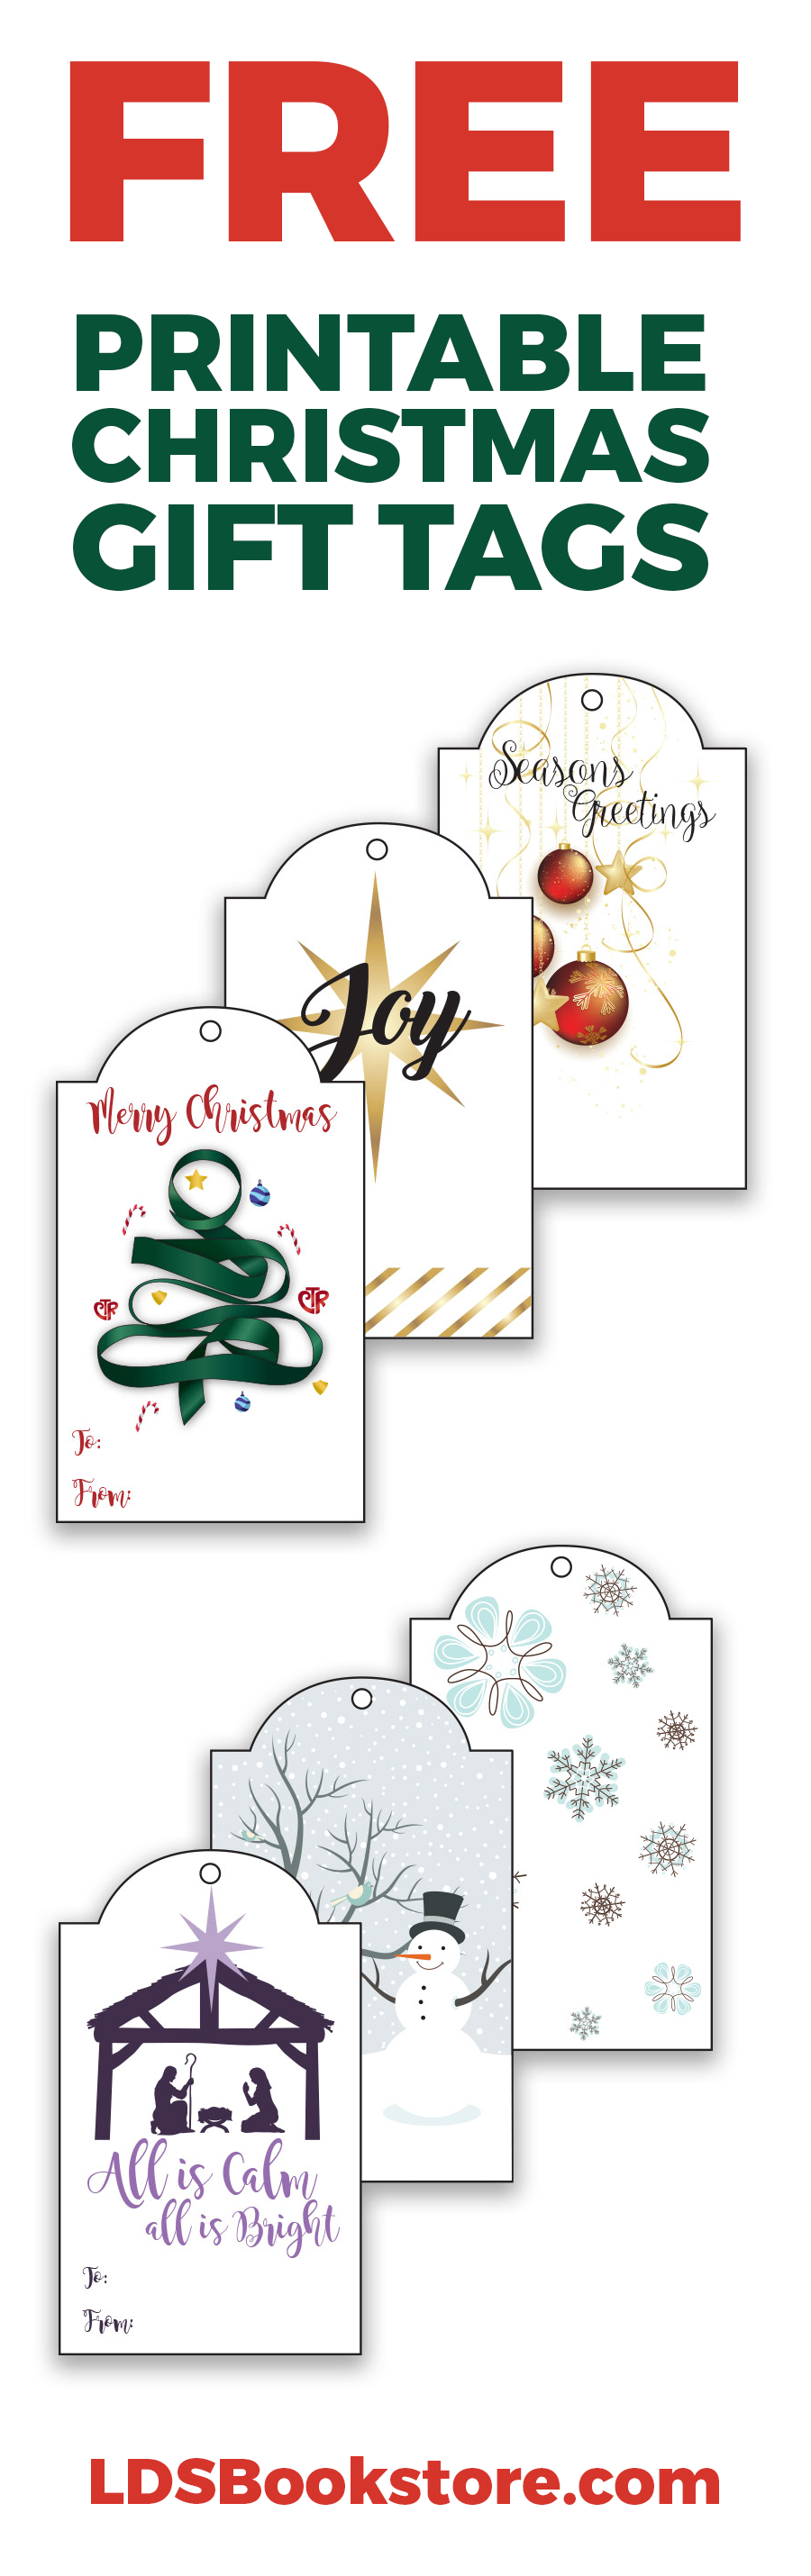 FREE Printable LDS Christmas Gift Tags | LDS Daily